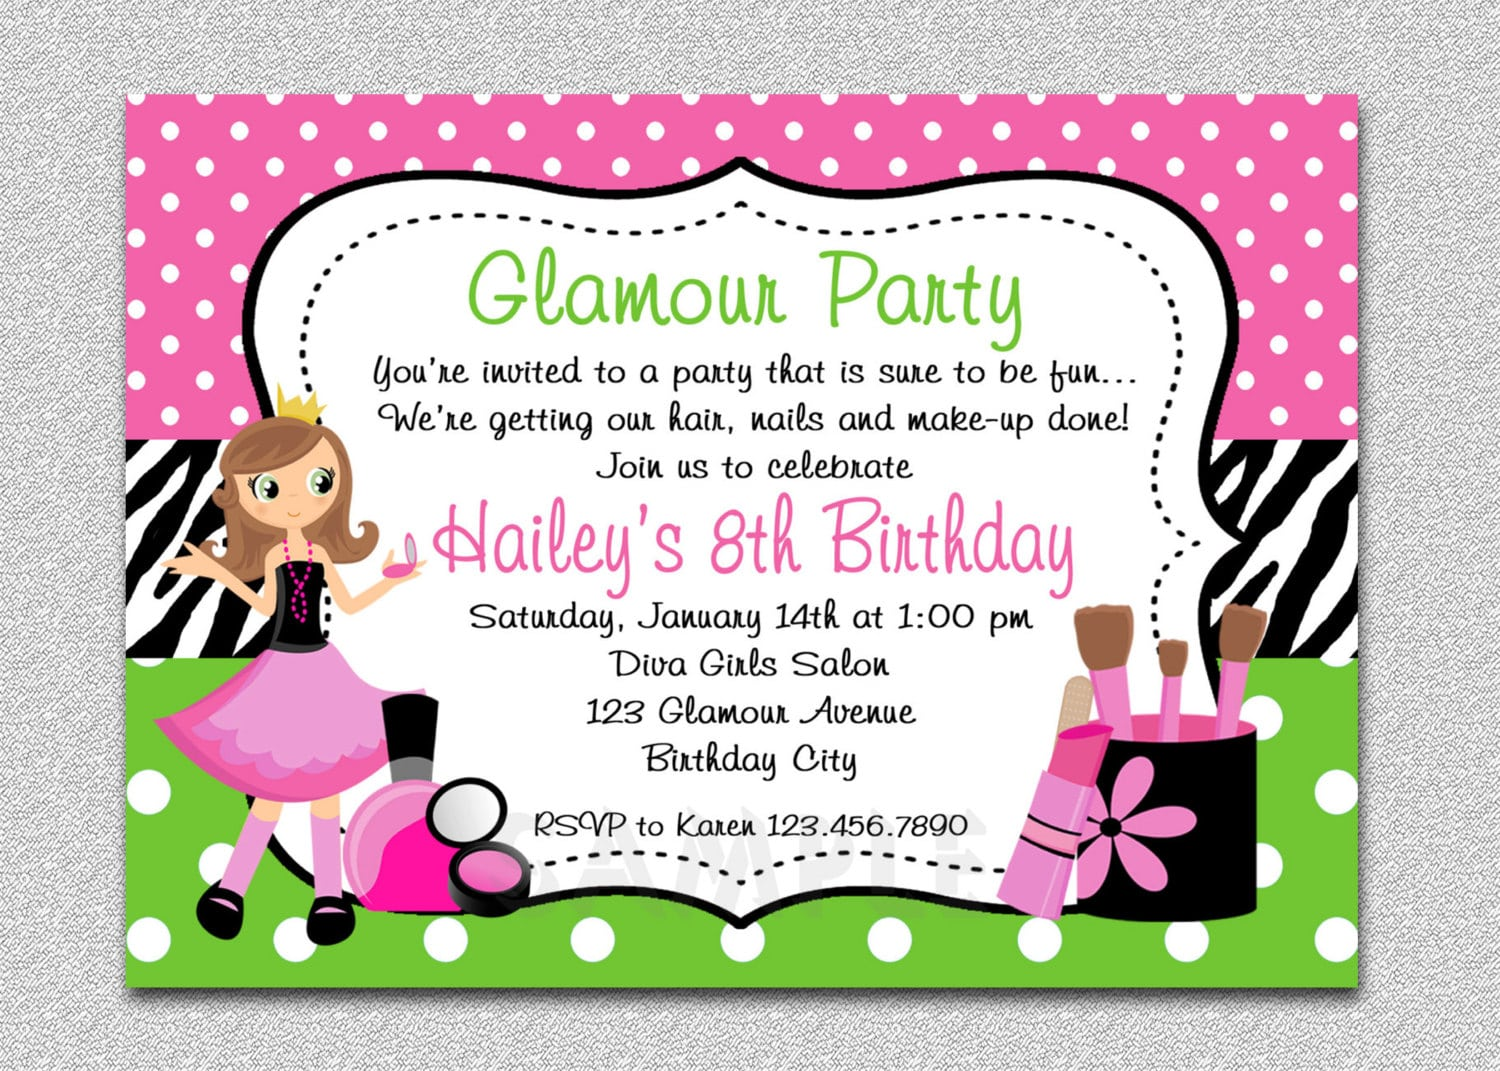 Beautiful Party Invitations Gallery